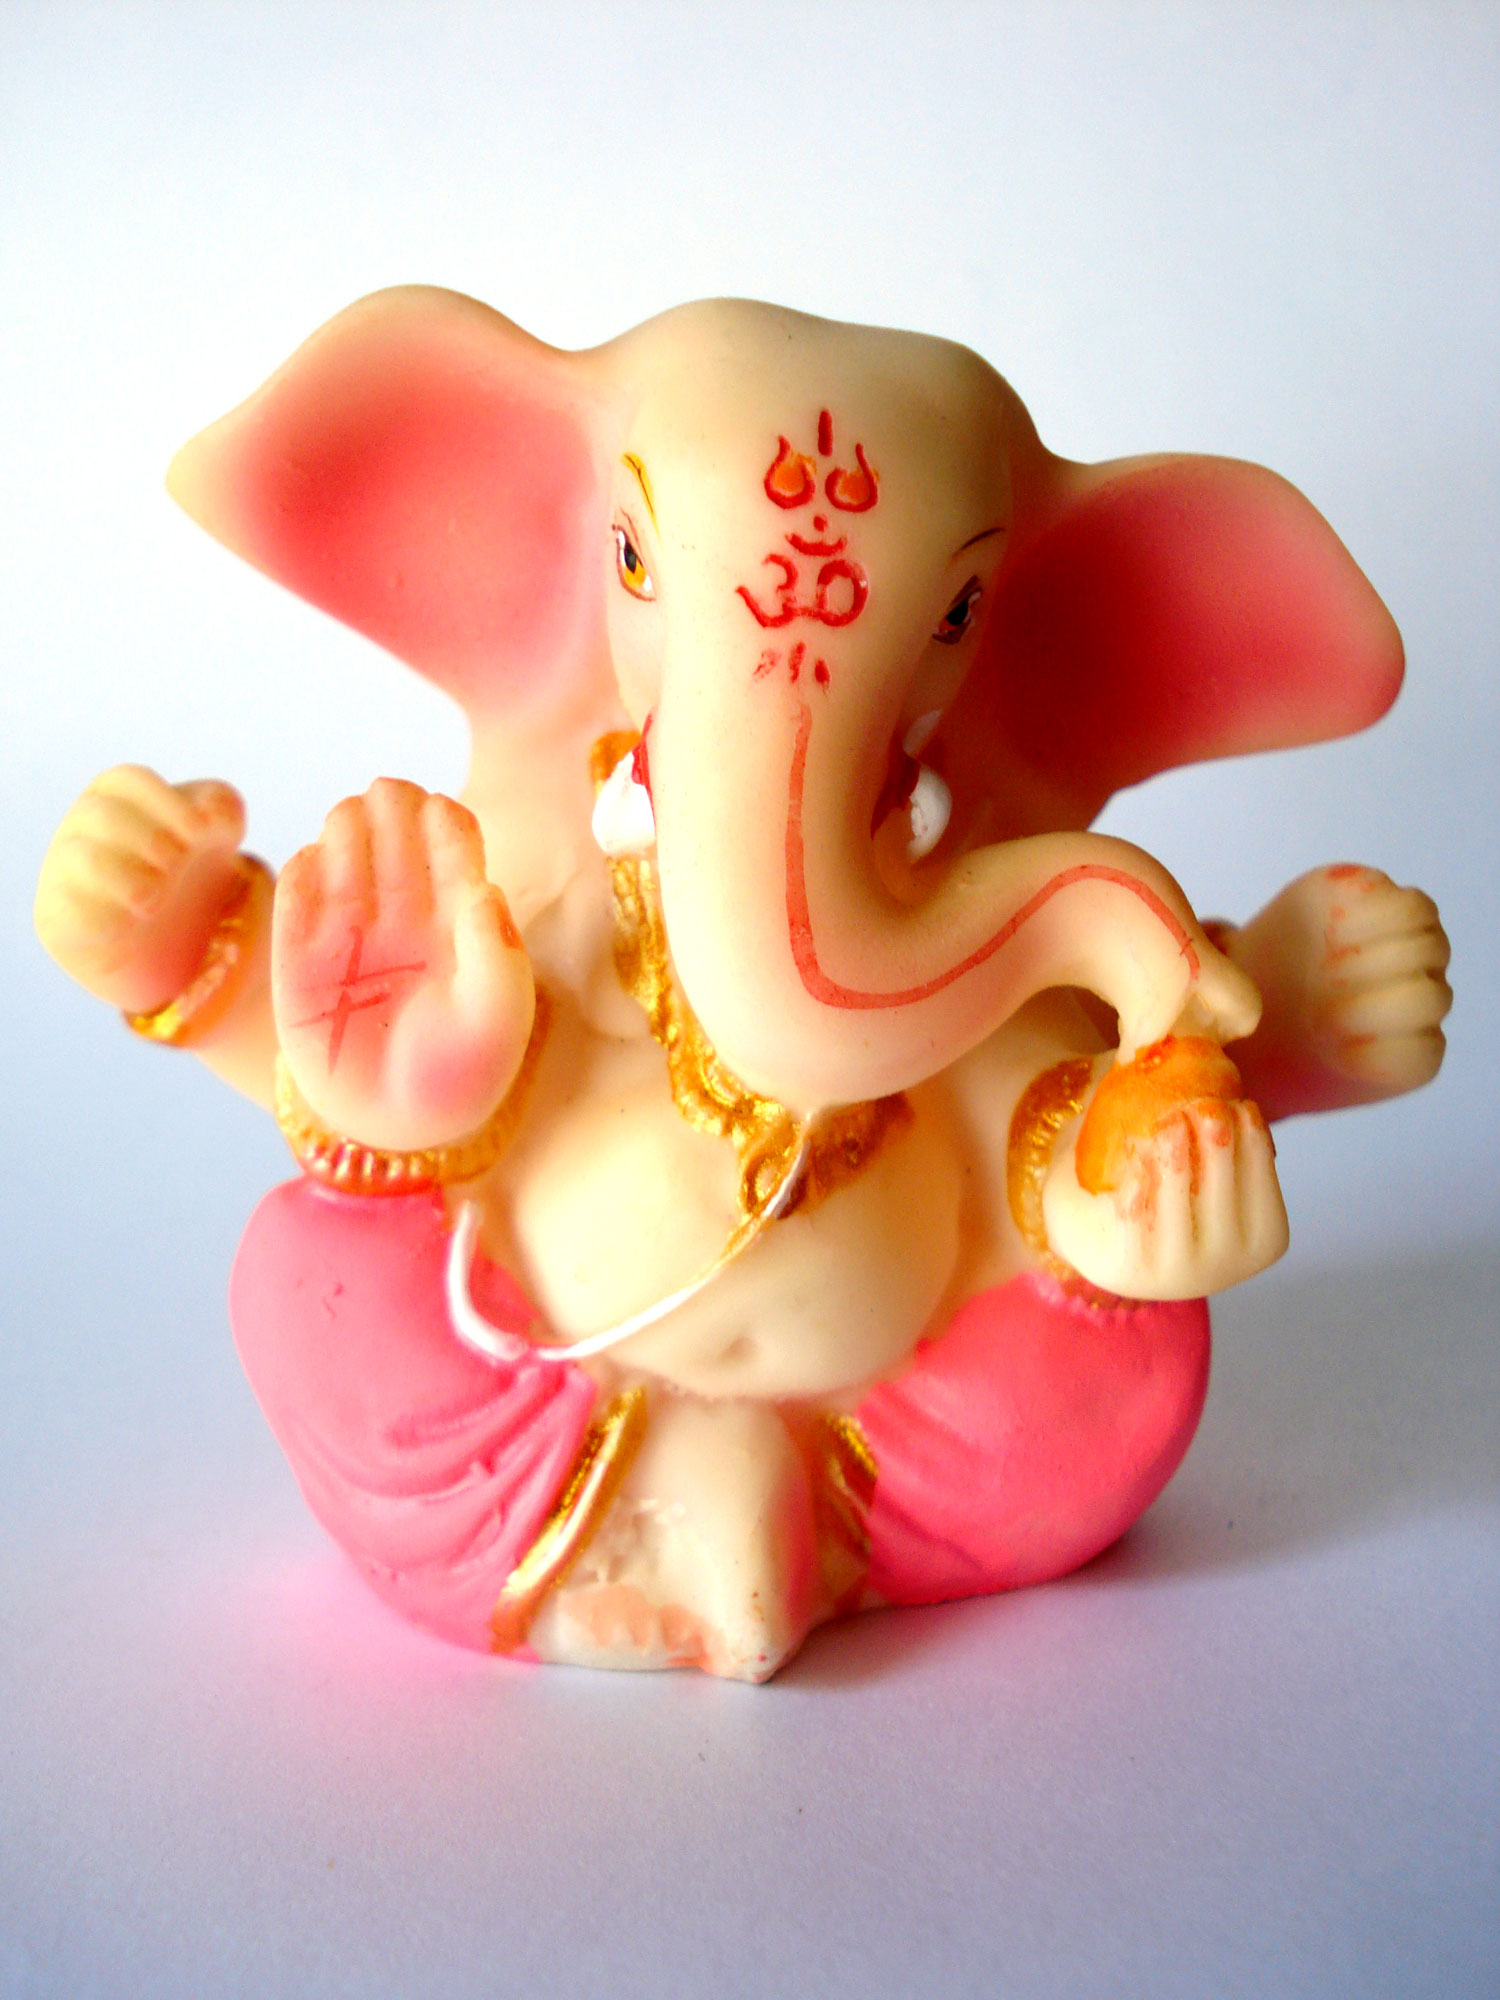 Cute Bal Ganesh Wallpaper Selection Of Ganesha Idol Or Picture For Auspiciousness In